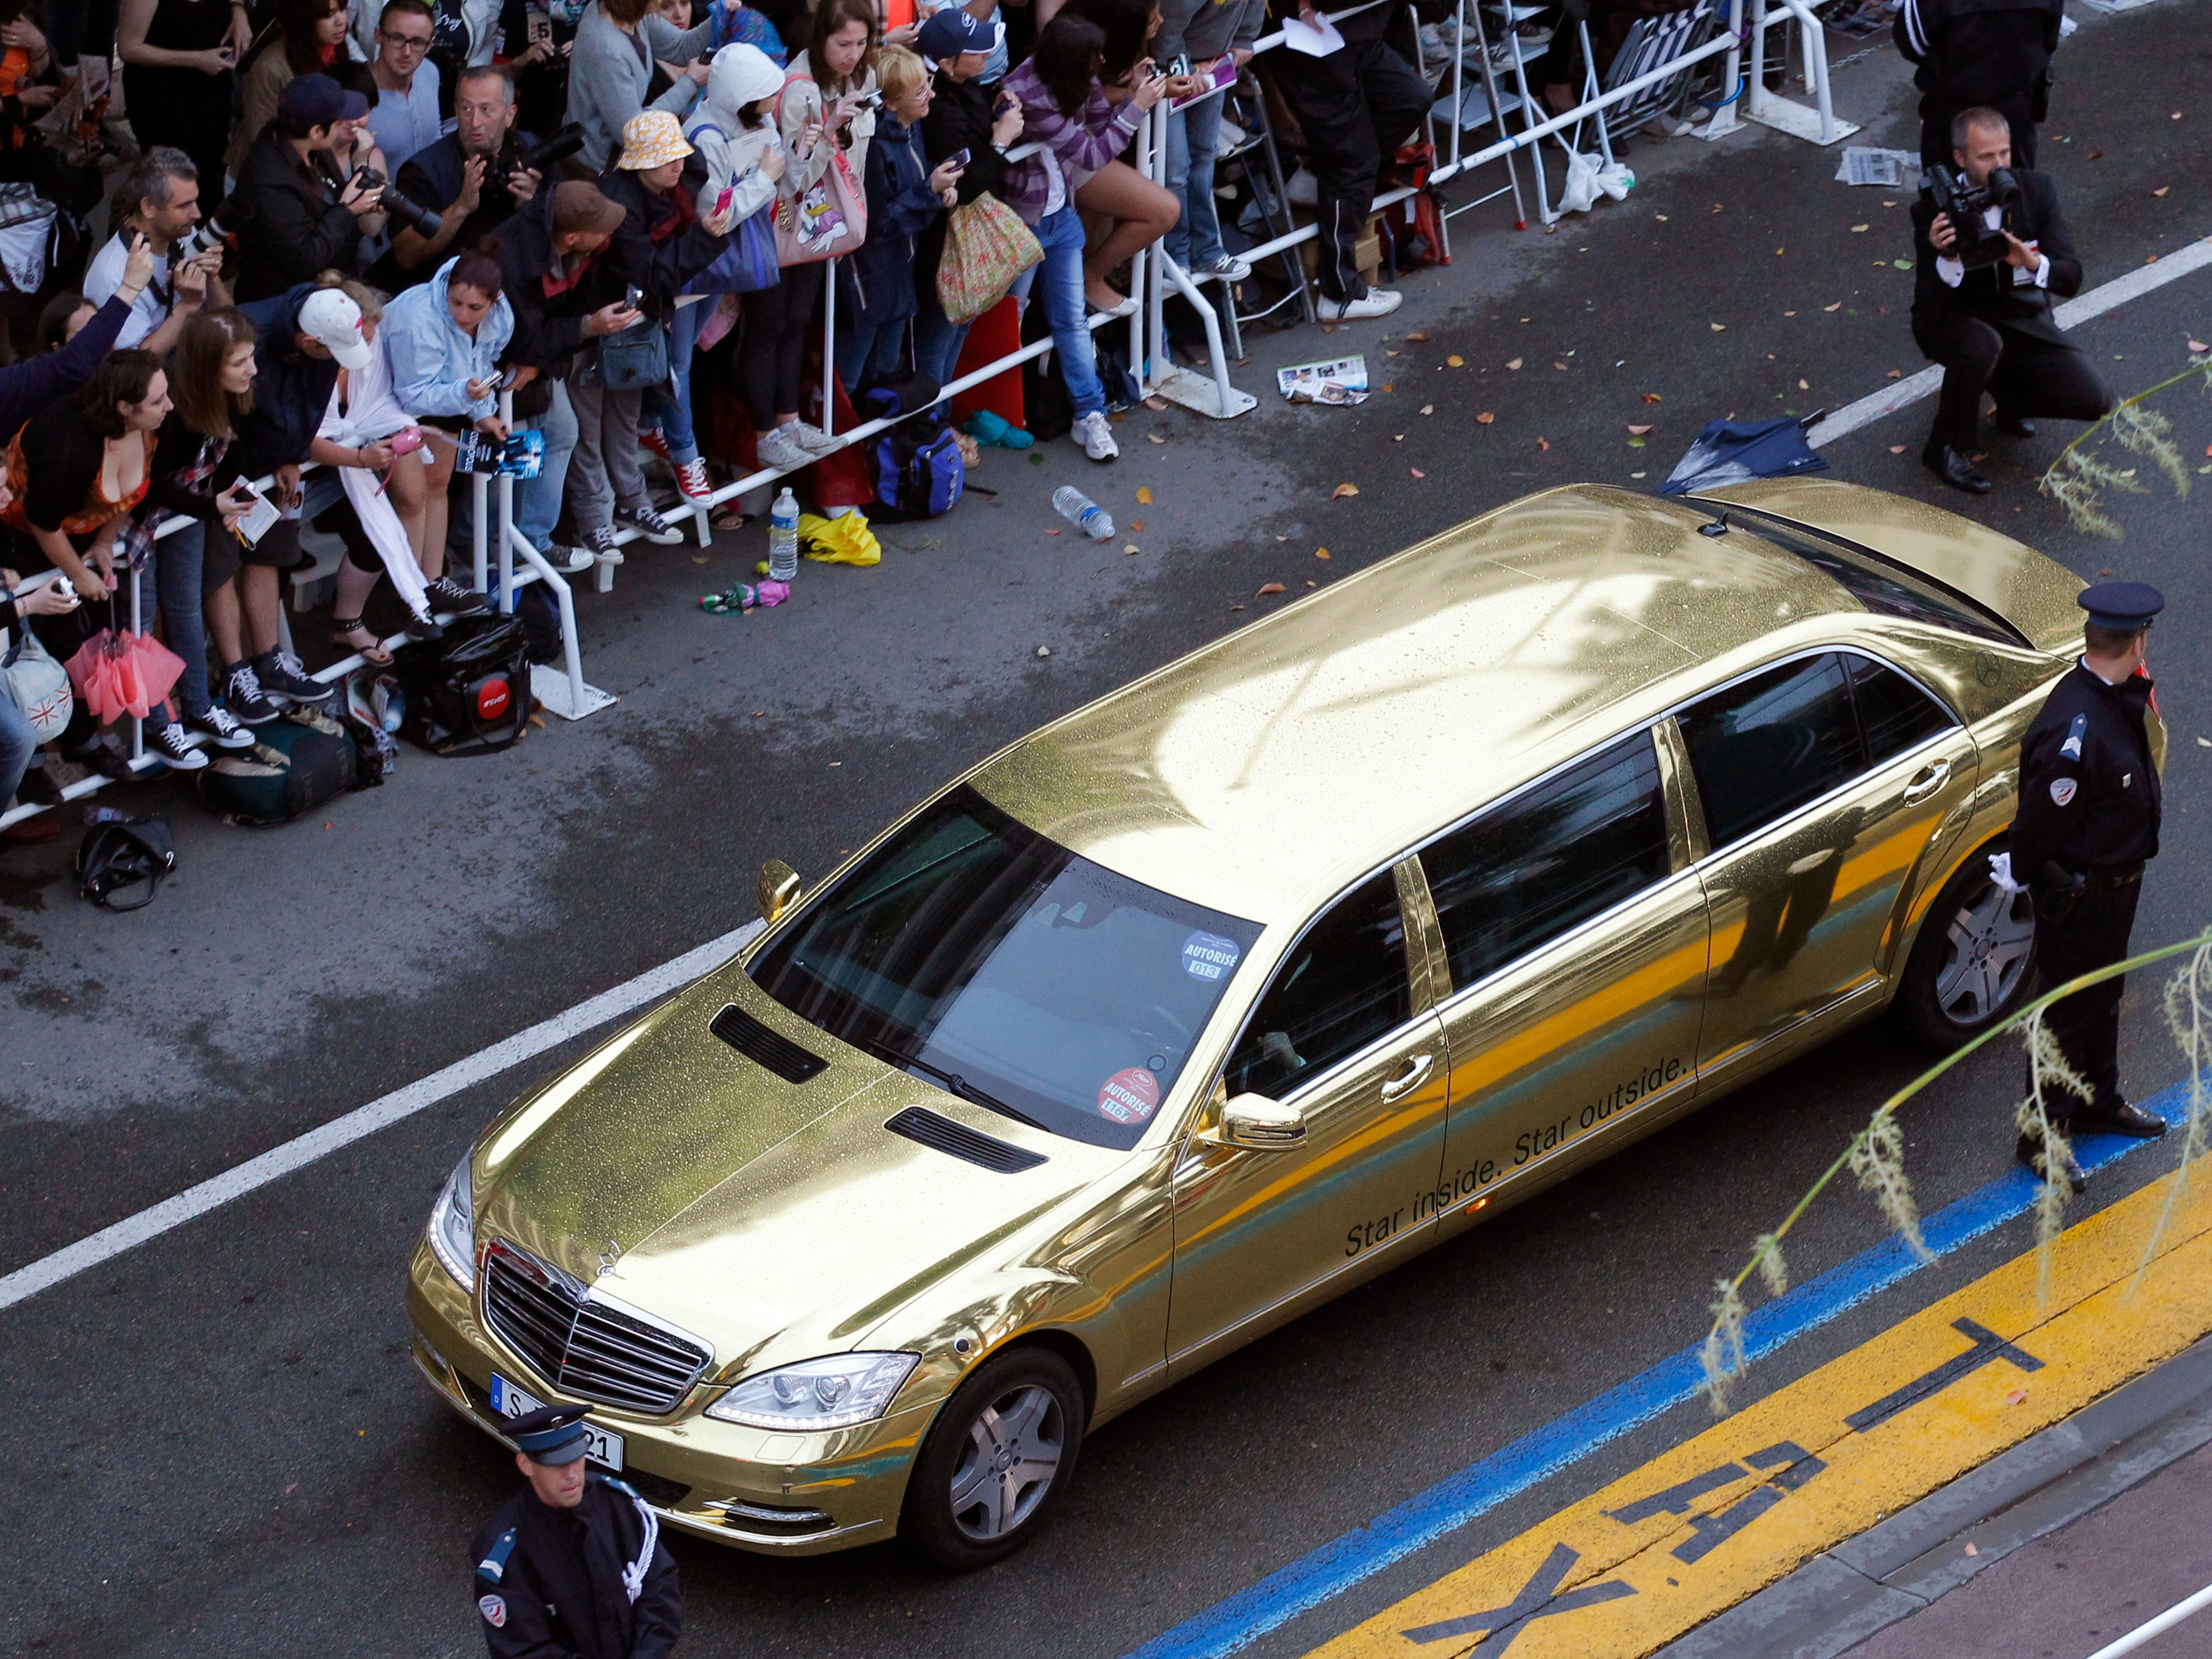 This is a gold colored limo in Cannes, France May, 35, 2012.